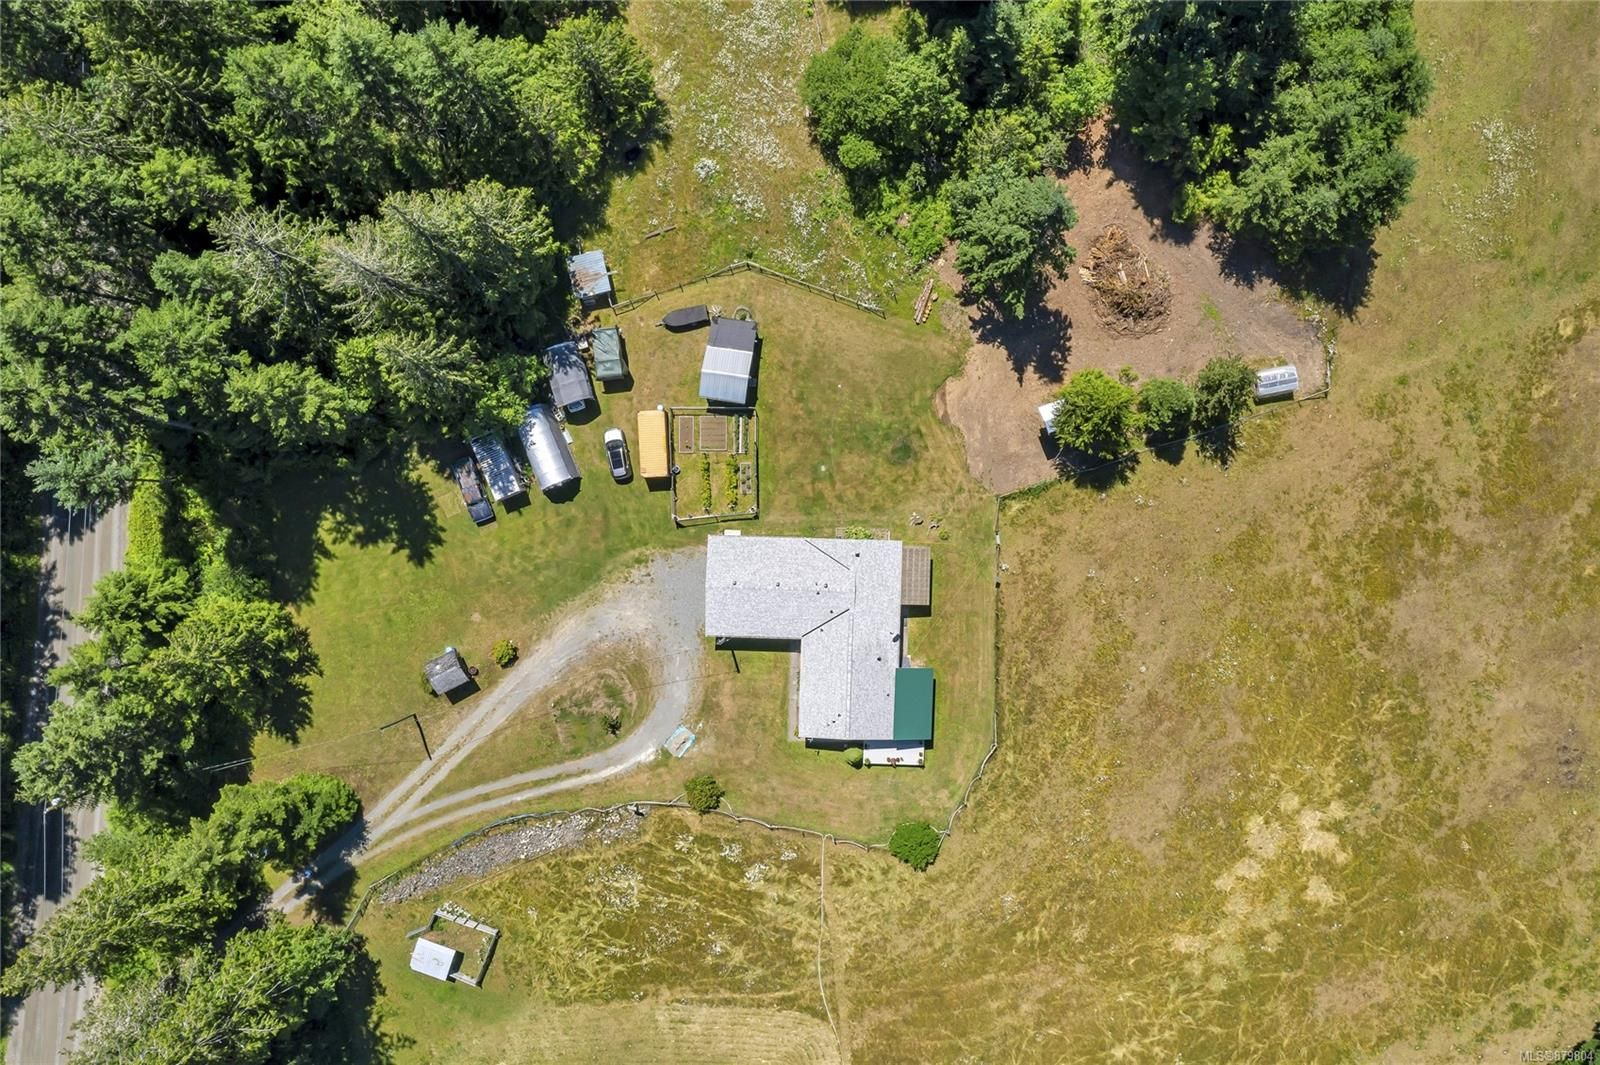 Photo 57: Photos: 3596 Riverside Rd in : ML Cobble Hill Manufactured Home for sale (Malahat & Area)  : MLS®# 879804